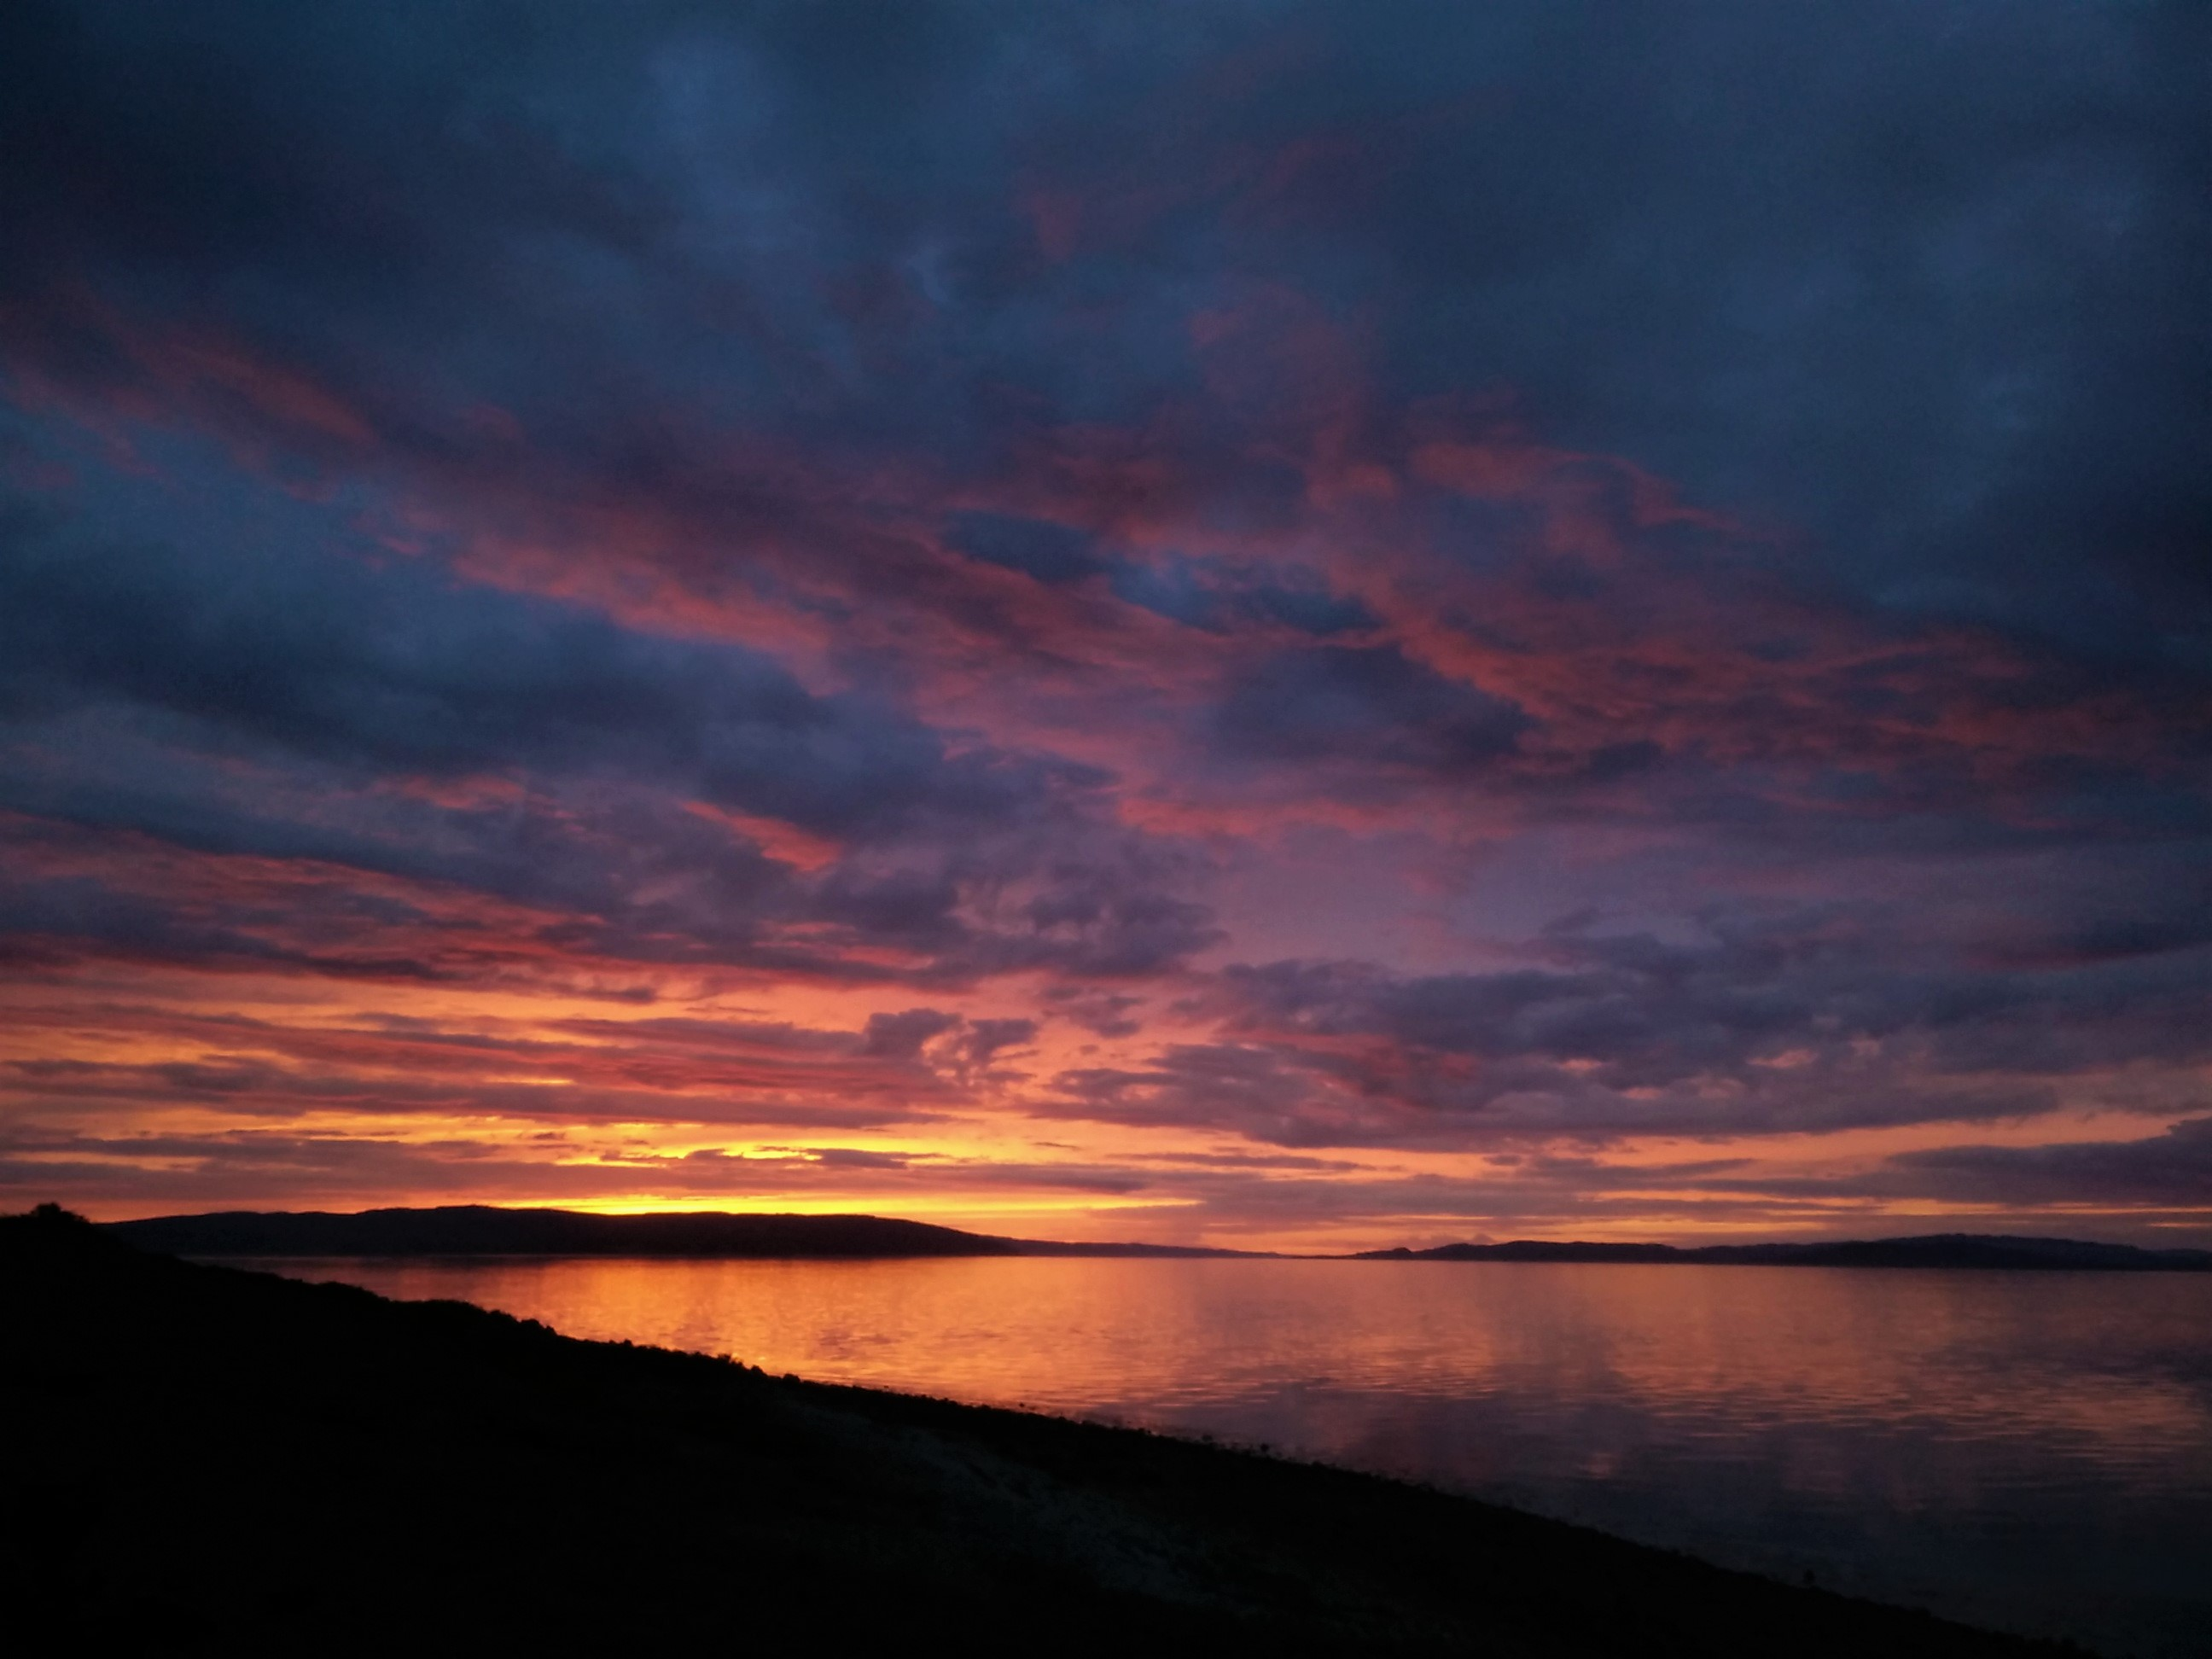 Arran Whisky Walk - Sunset over the Firth of Clyde